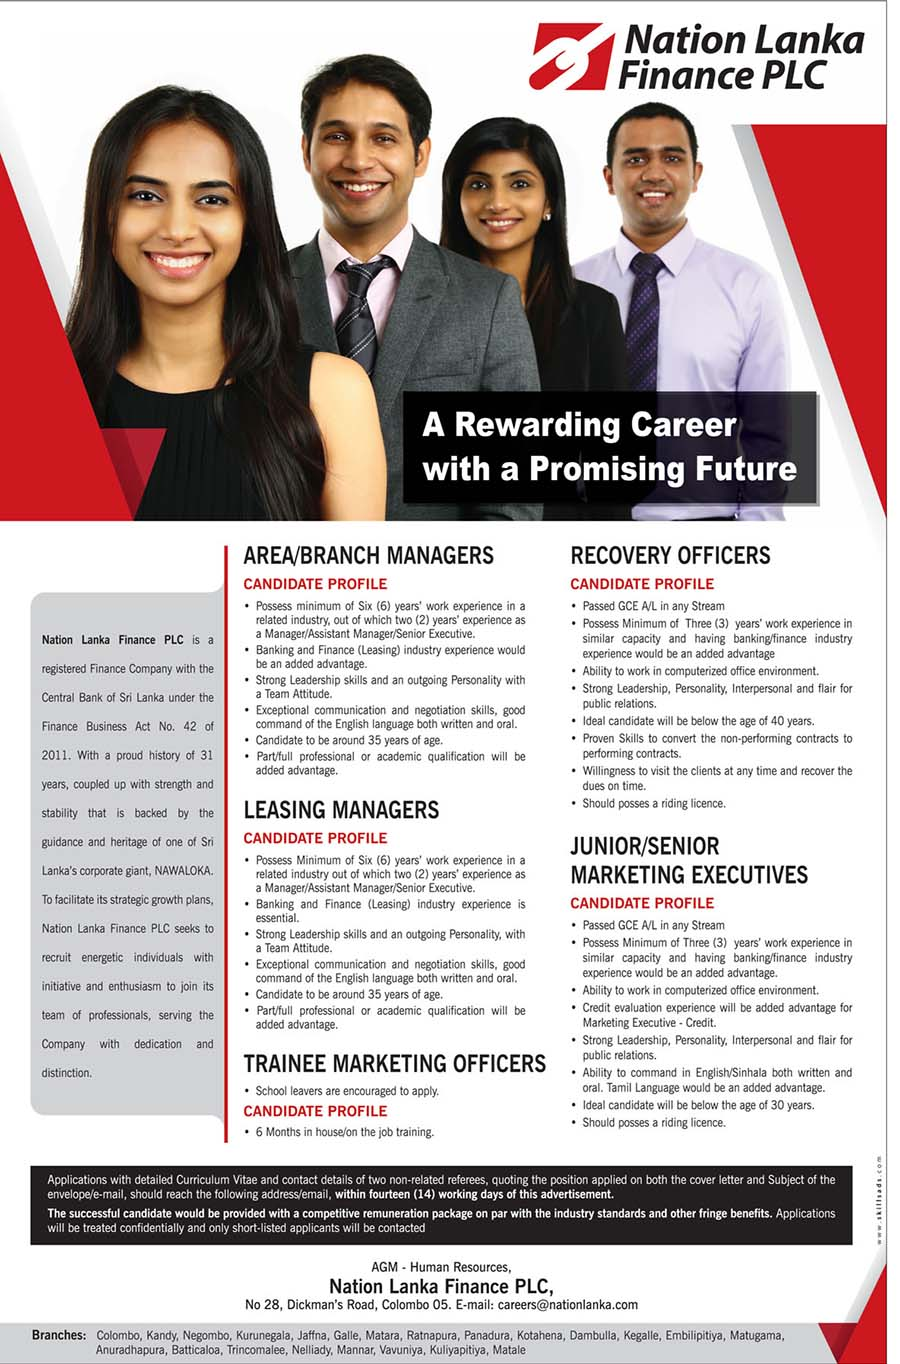 Marketing Executive, Recovery Officer, Trainee Marketing Officer, Leasing Manager, Area/Branch manager Vacancies at Nation Lanka Finance PLC